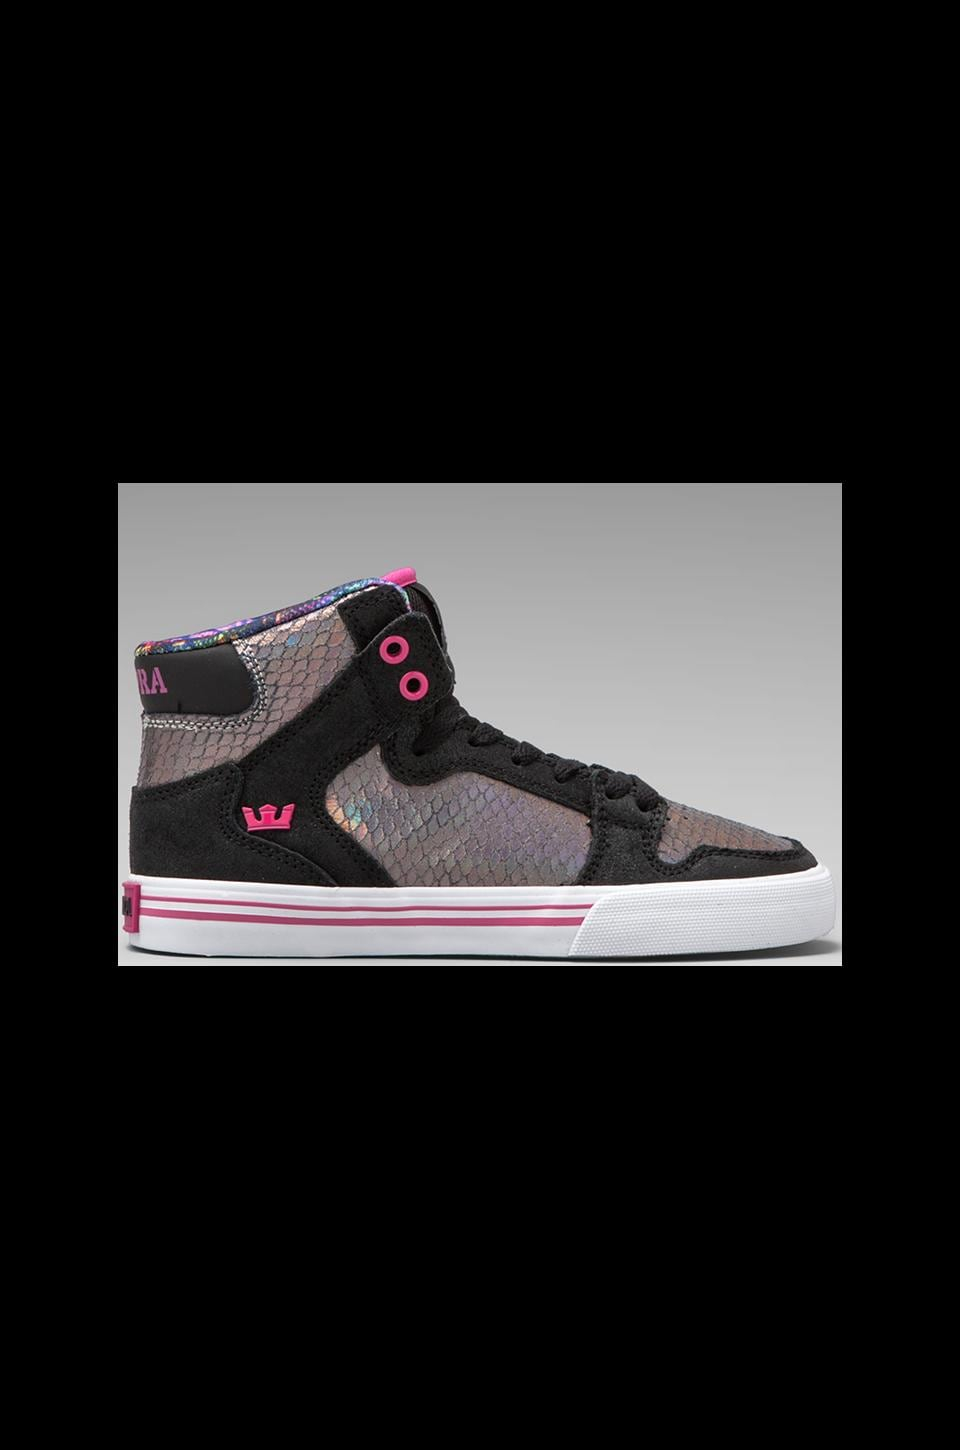 Supra Vaider Sneaker in Black/Multi